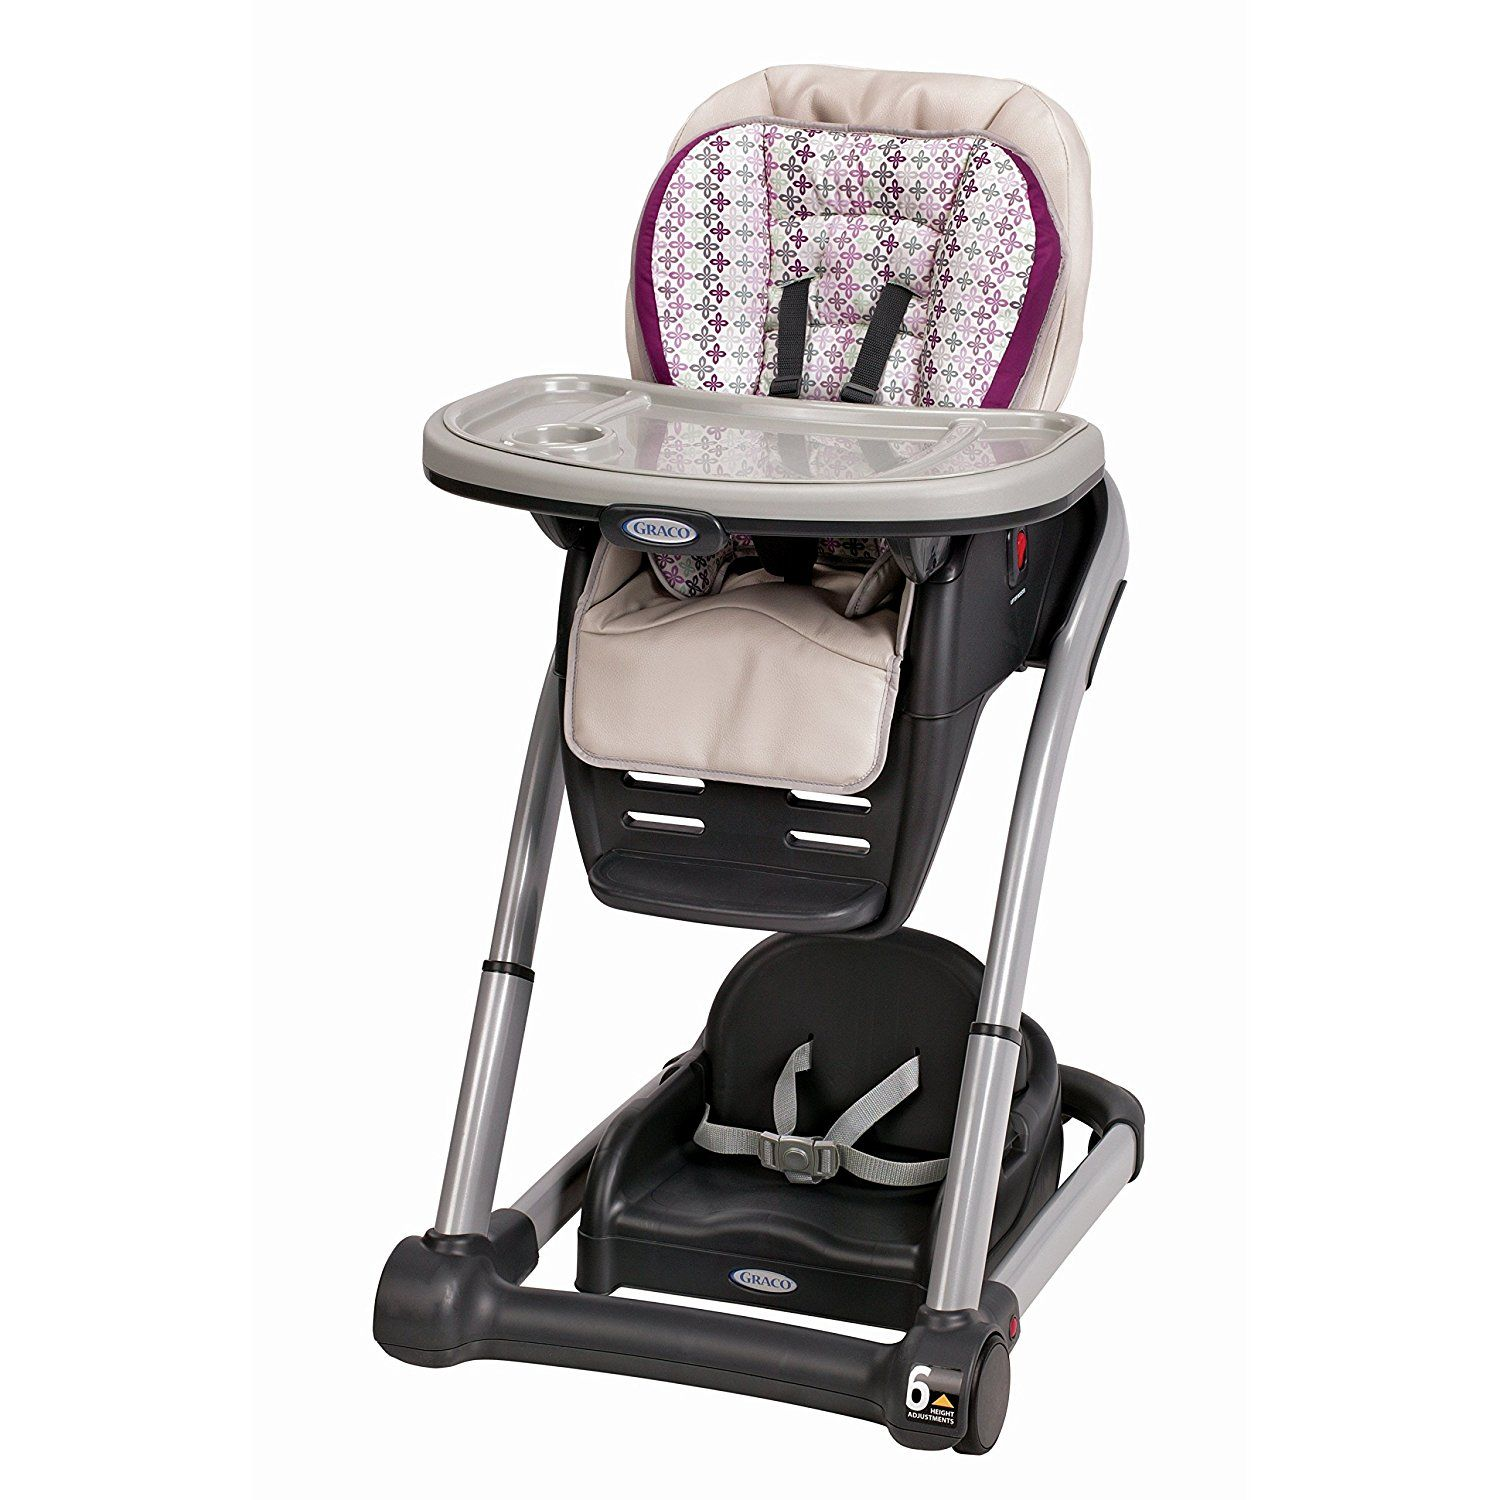 Graco Blossom 6 In 1 Convertible High Chair Nyssa Walmart Com In 2020 Graco High Chair Baby High Chair Convertible High Chair